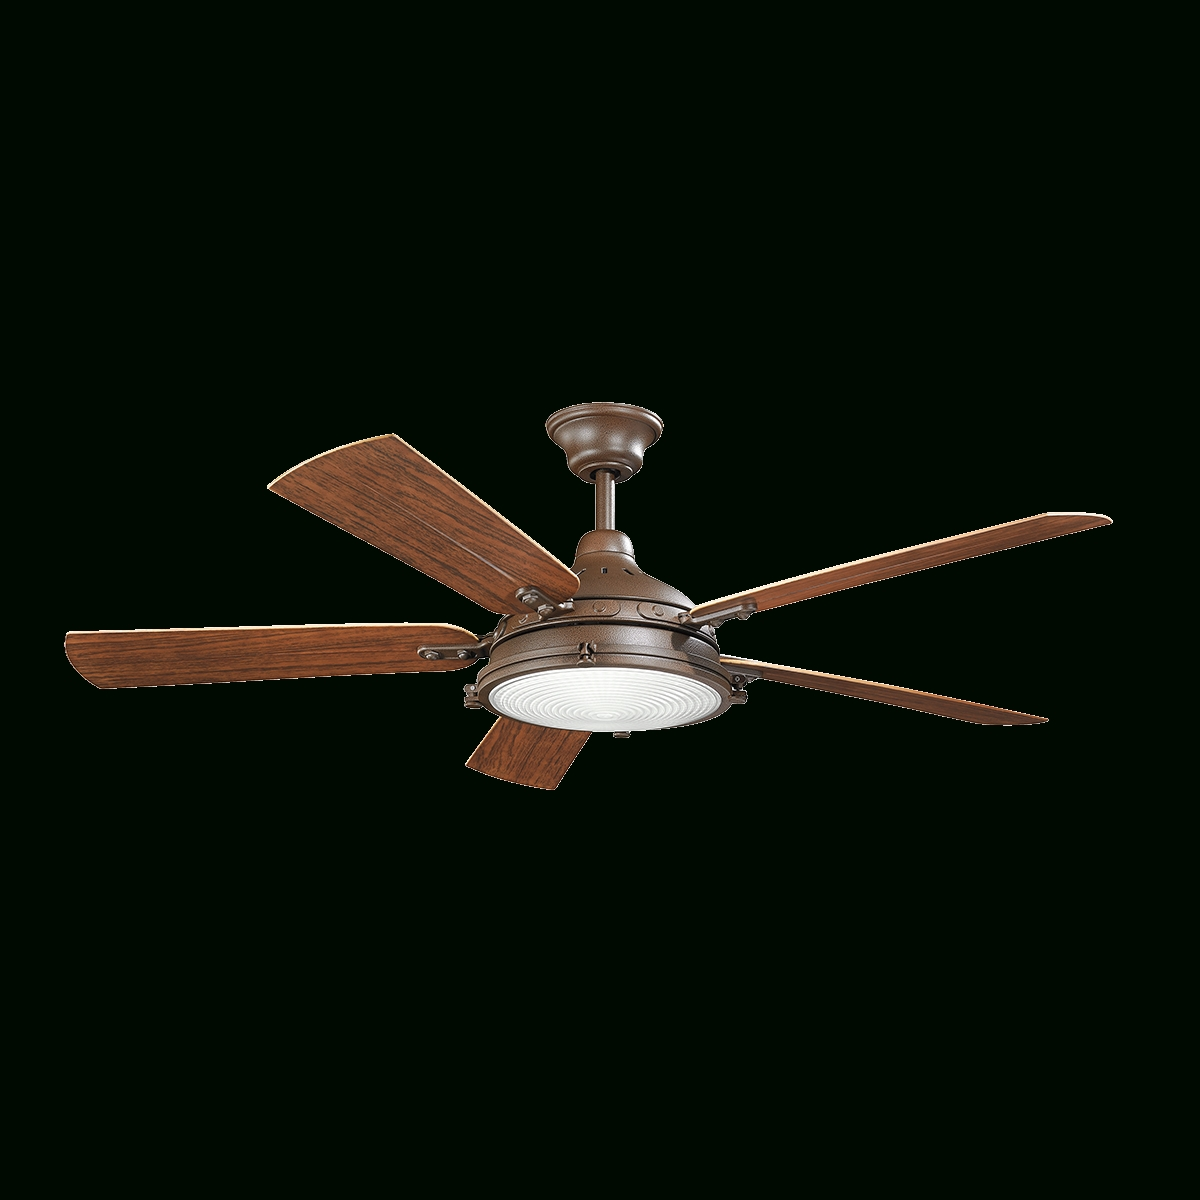 Remodeling Ideas Intended For 2018 72 Predator Bronze Outdoor Ceiling Fans With Light Kit (View 18 of 20)